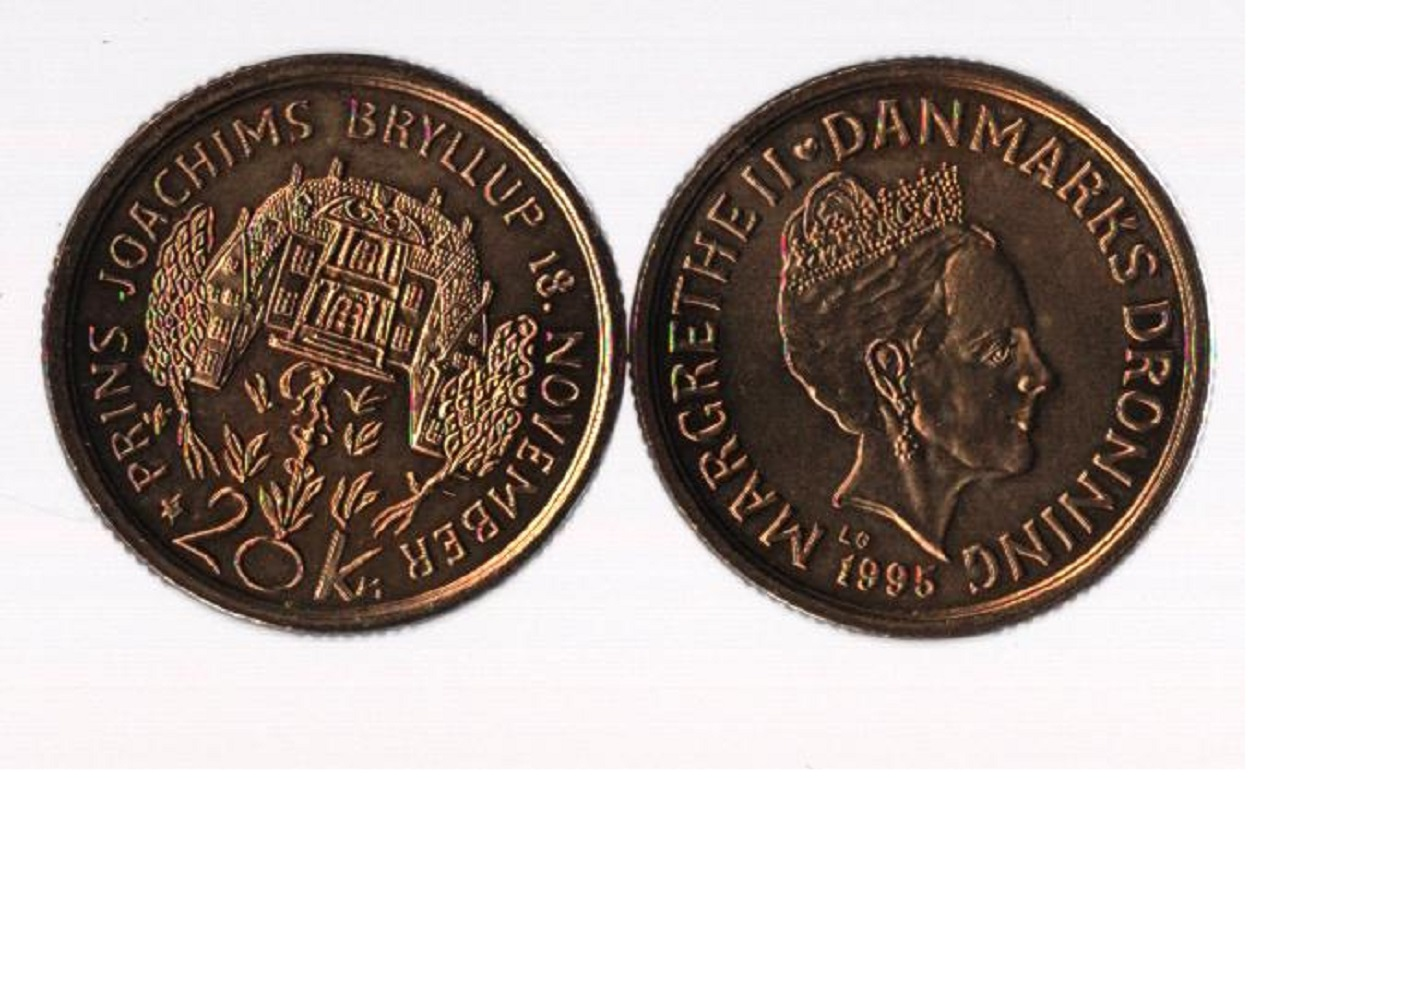 Danish coin collection. 1995. 2 coins both 20k. Good condition. We combine postage on multiple